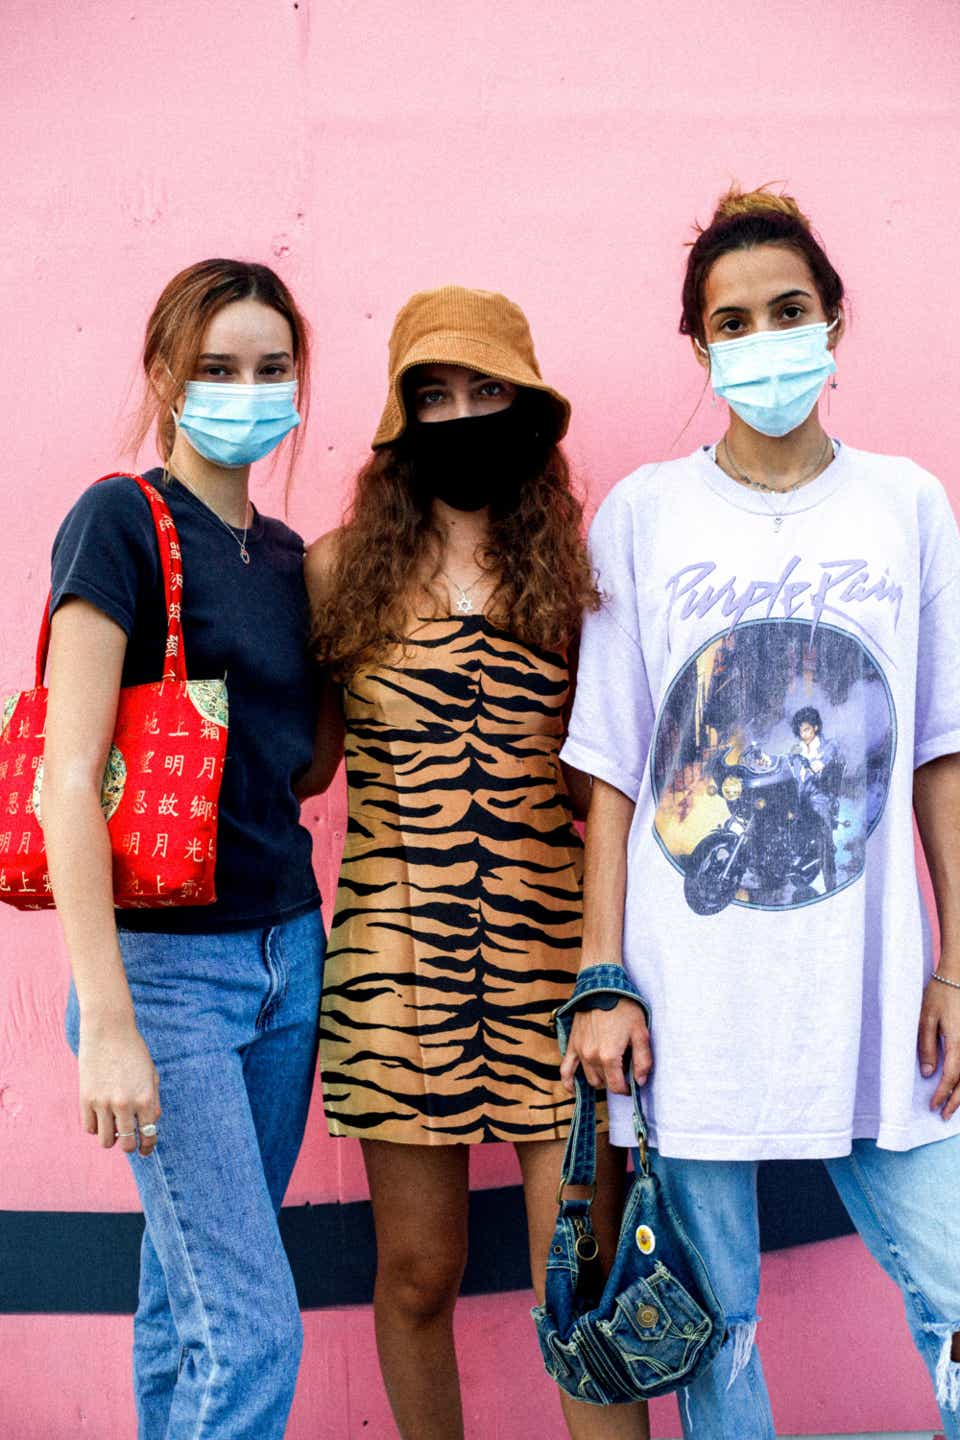 Three friends pose against a pink wall. The person on the left, Anarella, wears a black T-shirt, blue jeans, and a red handbag. The middle person, Dania, is wearing a tiger-print mini dress from Realisation Par with an orange bucket hat, and a black mask. The person on the right, Duda, is wearing a surgical mask with an oversized Purple Rain T-shirt, jeans, and a denim handbag.